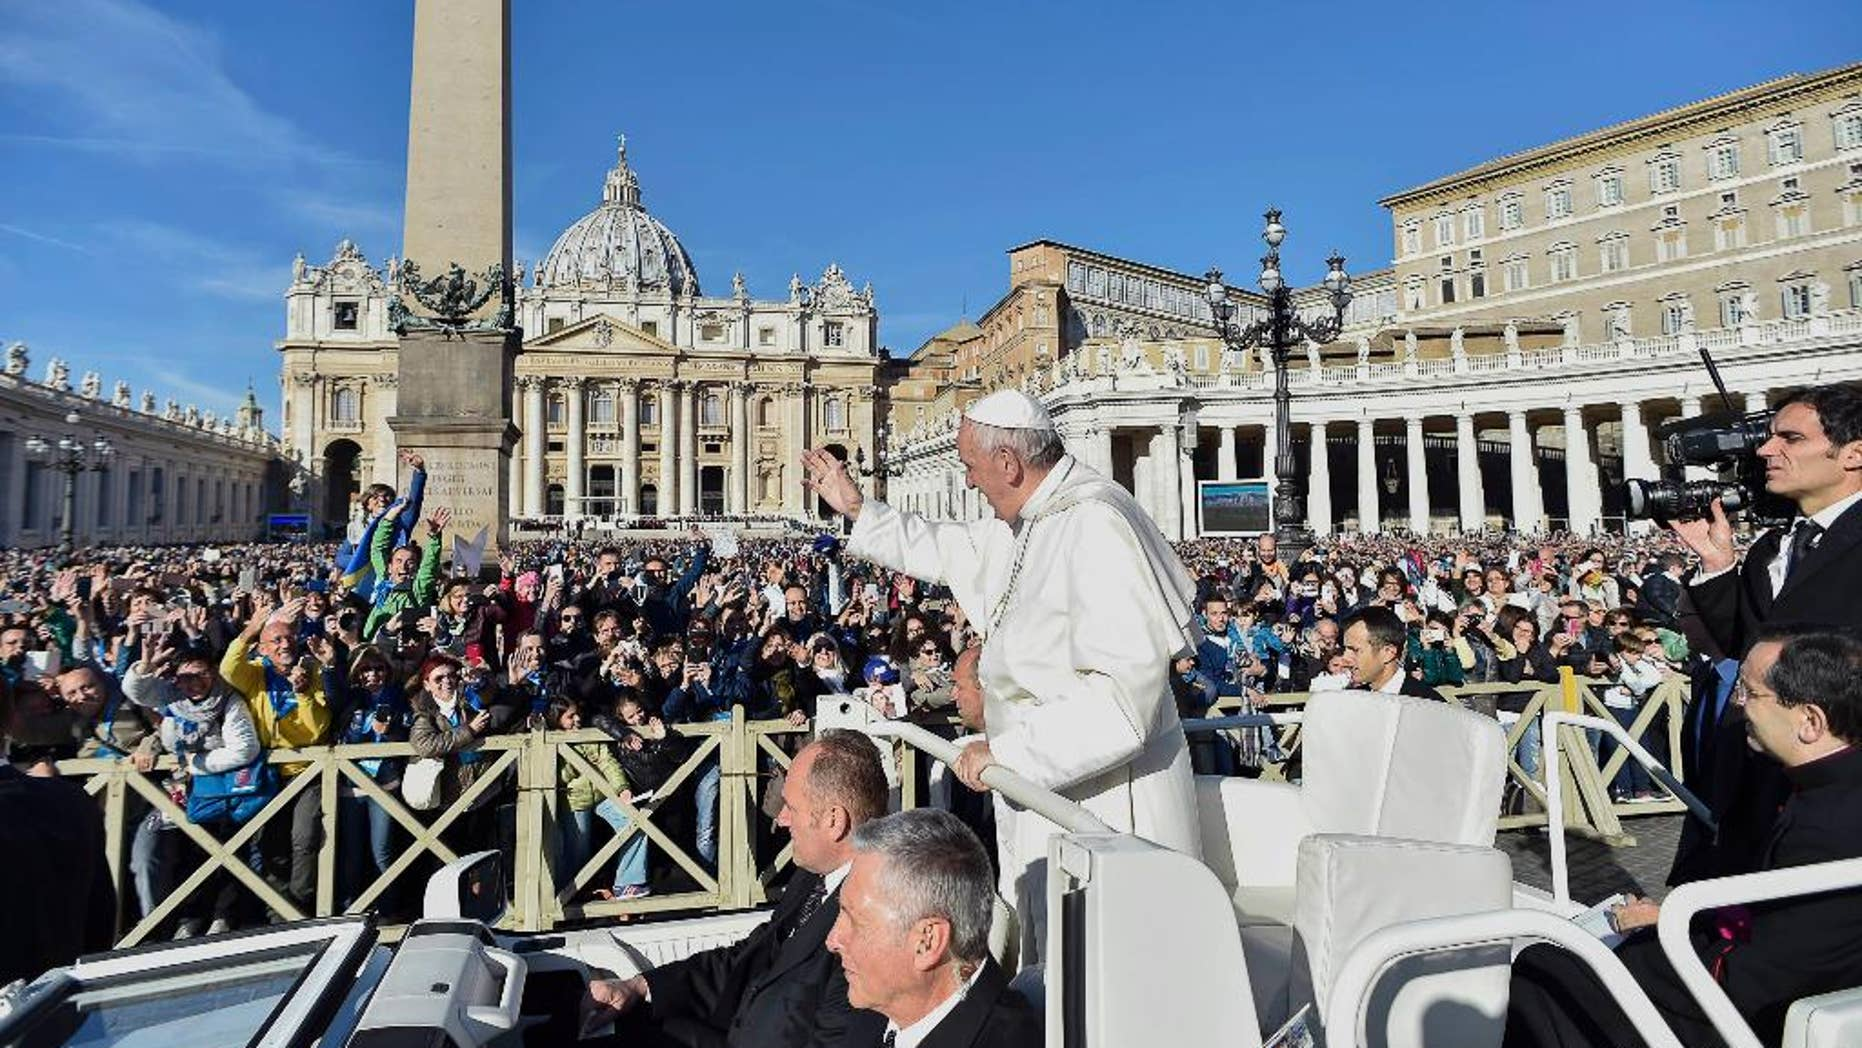 """Pope Francis waves to faithful during a jubilee audience in St. Peter's Square, at the Vatican Saturday, Oct. 22, 2016. (L""""osservatore Romano/Pool Photo via AP)"""